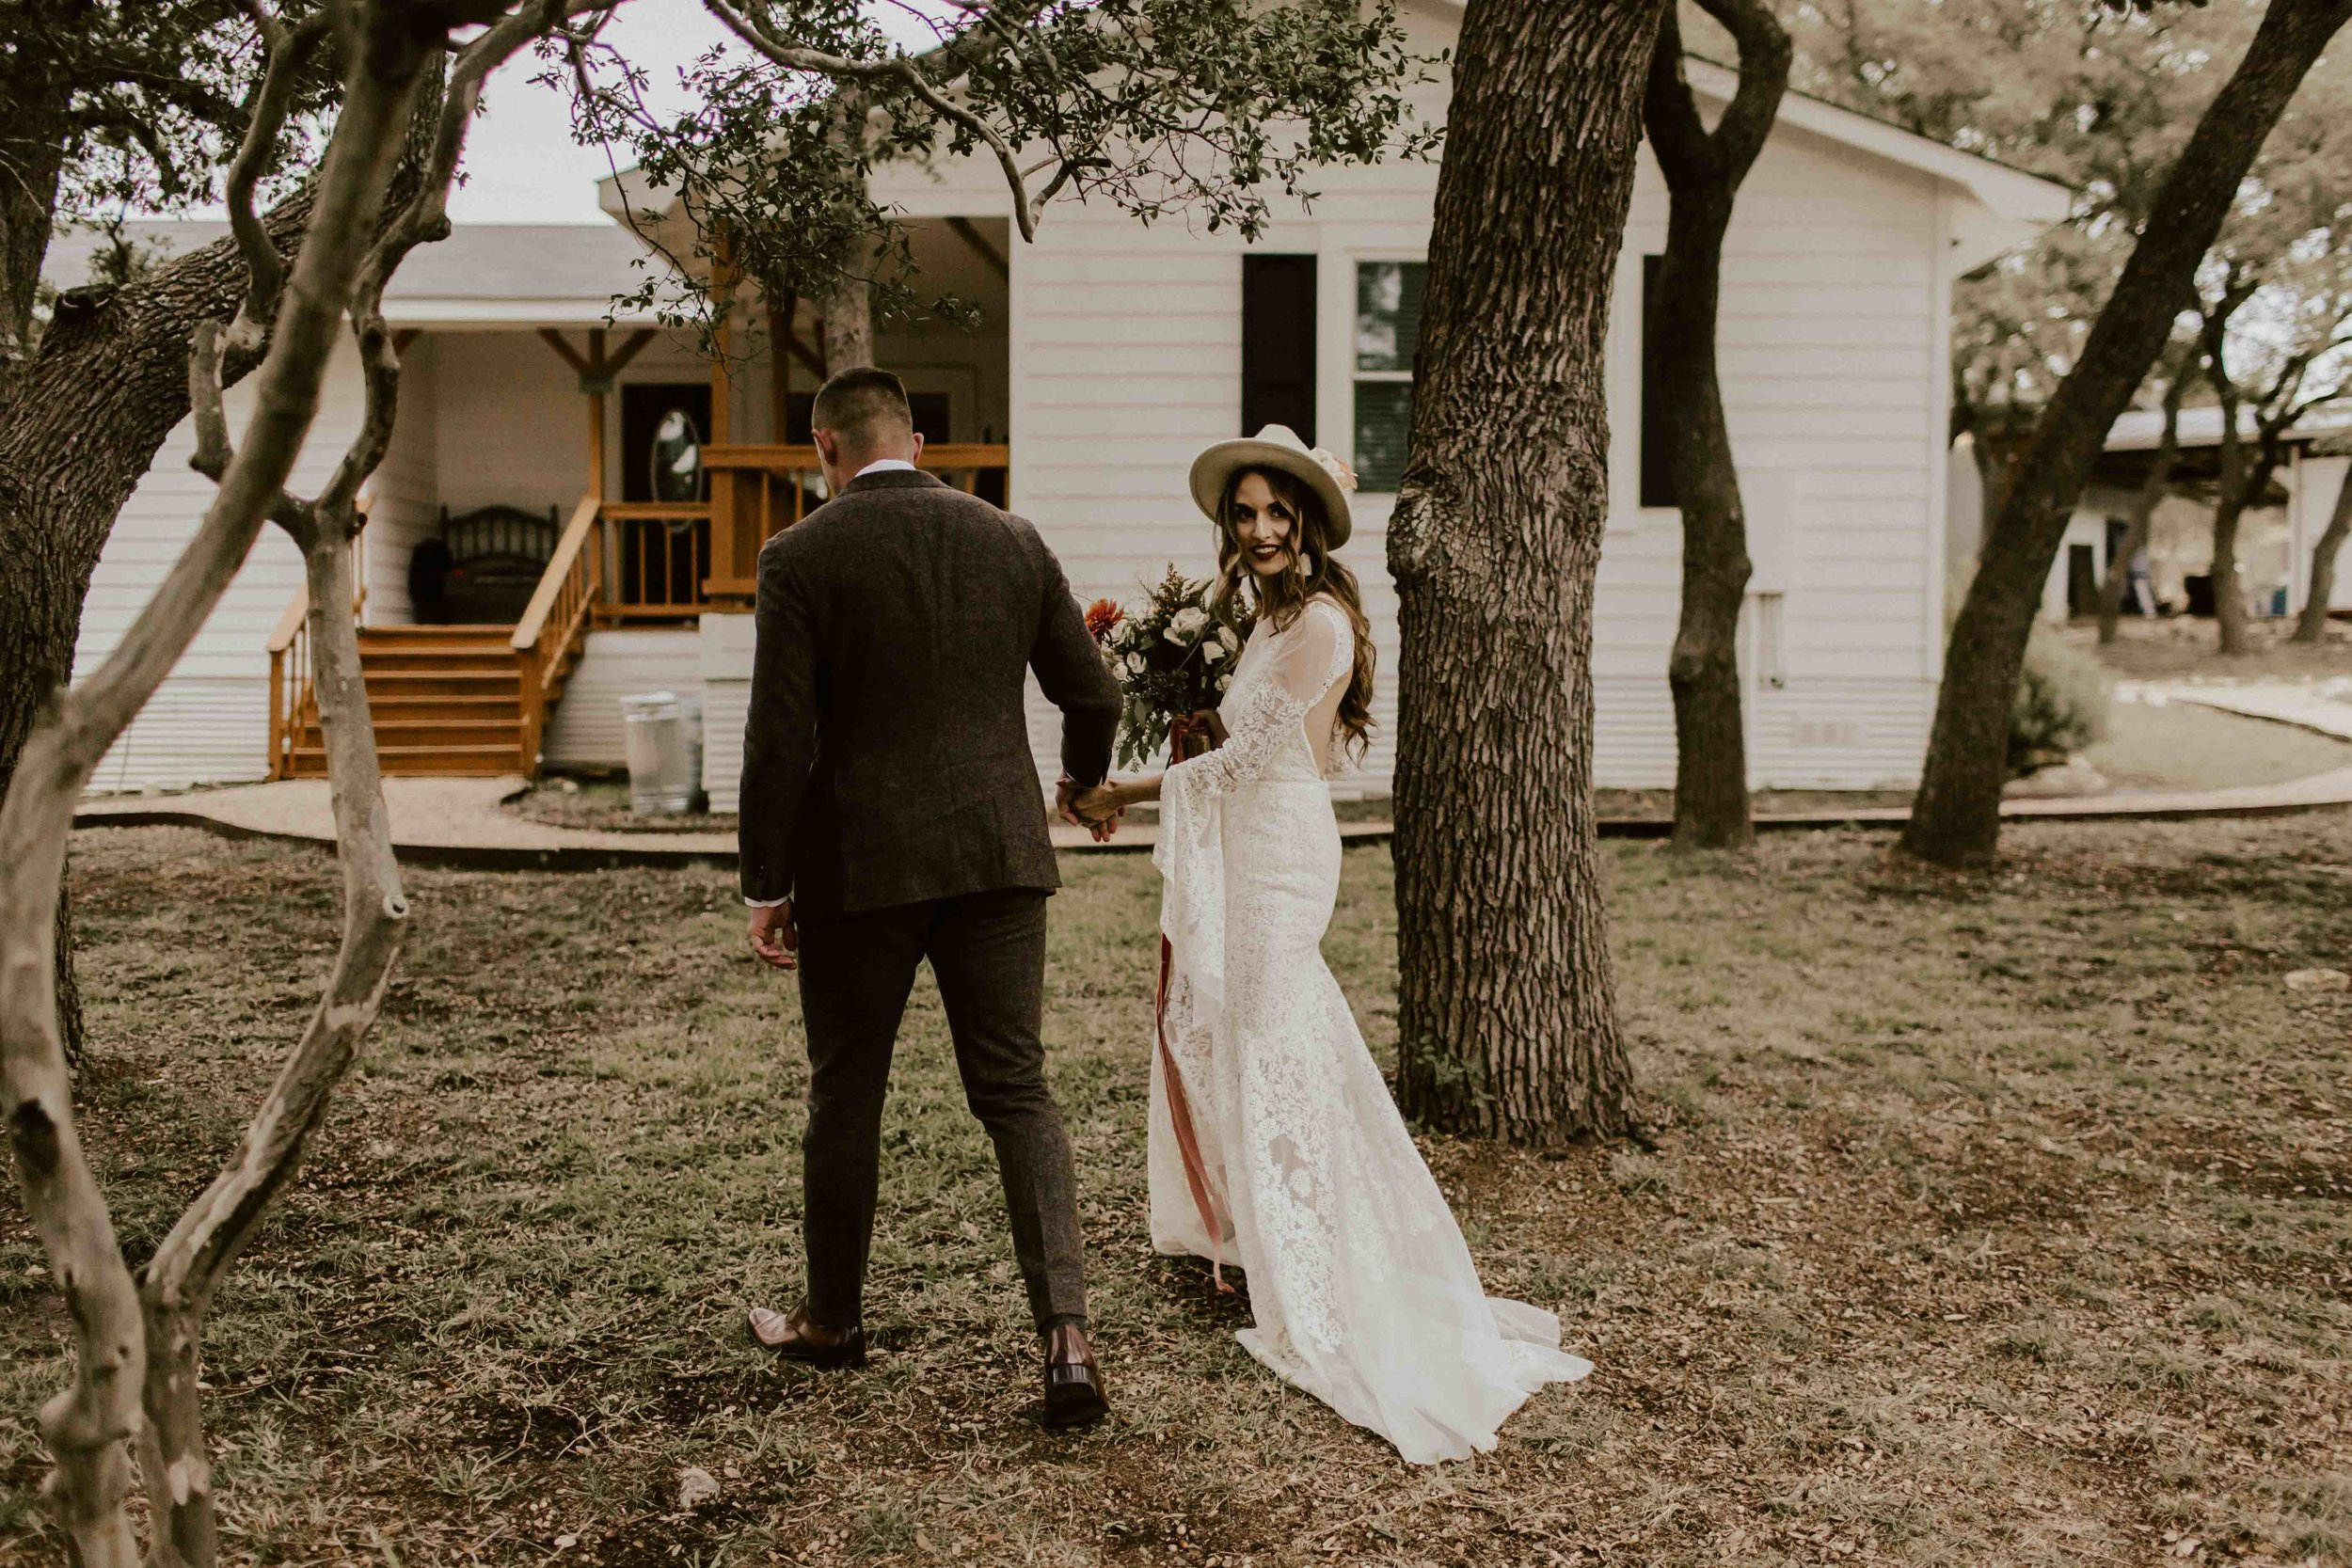 fall-intimate-vow-renewal-austin-texas-wedding-photographer-1492.jpg